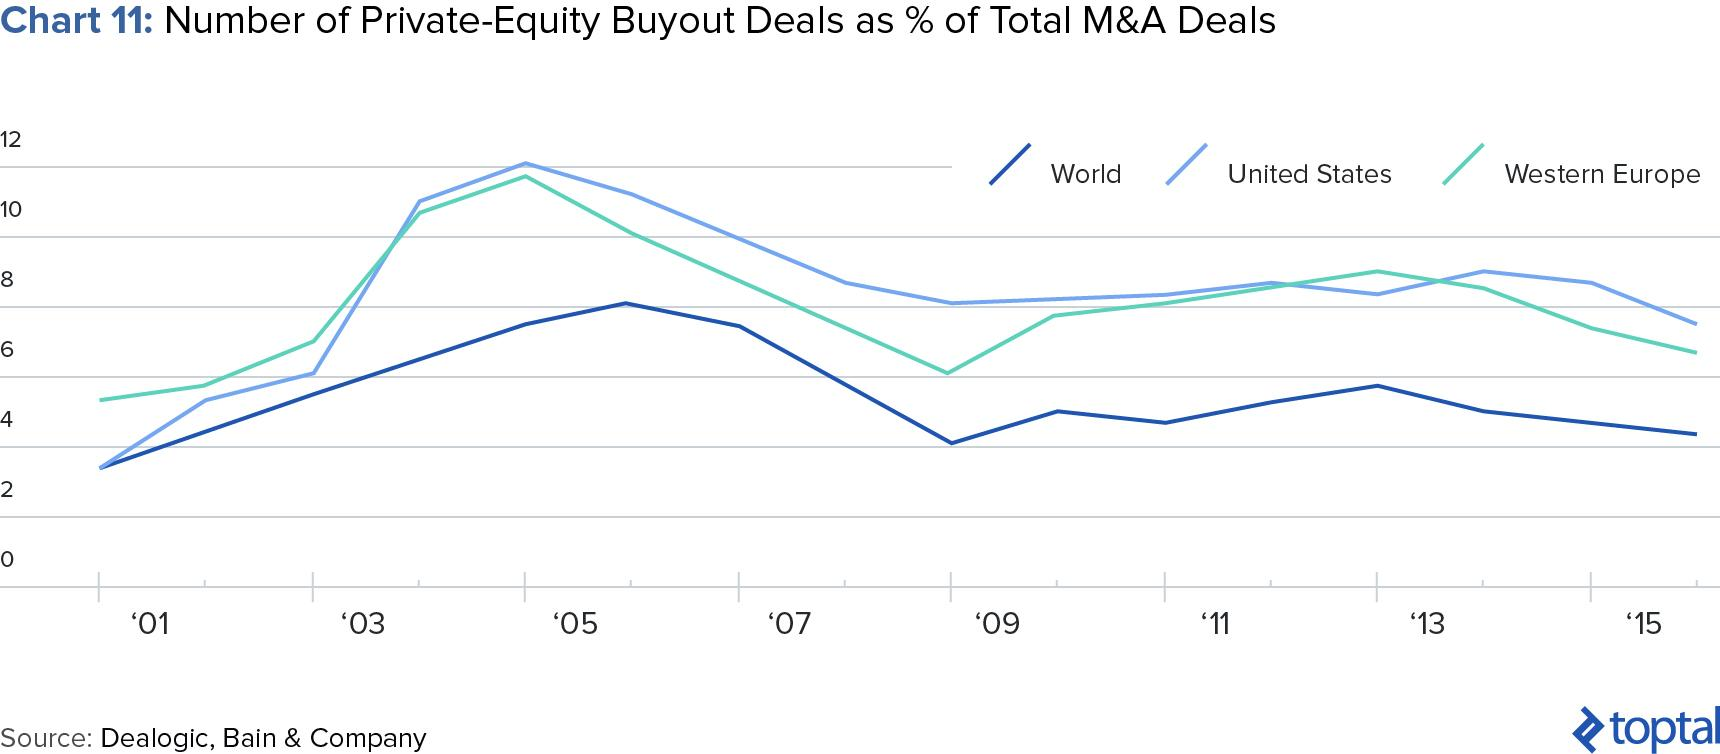 Chart 11: Number of private equity Buyout Deals as % of Total M&A Deals